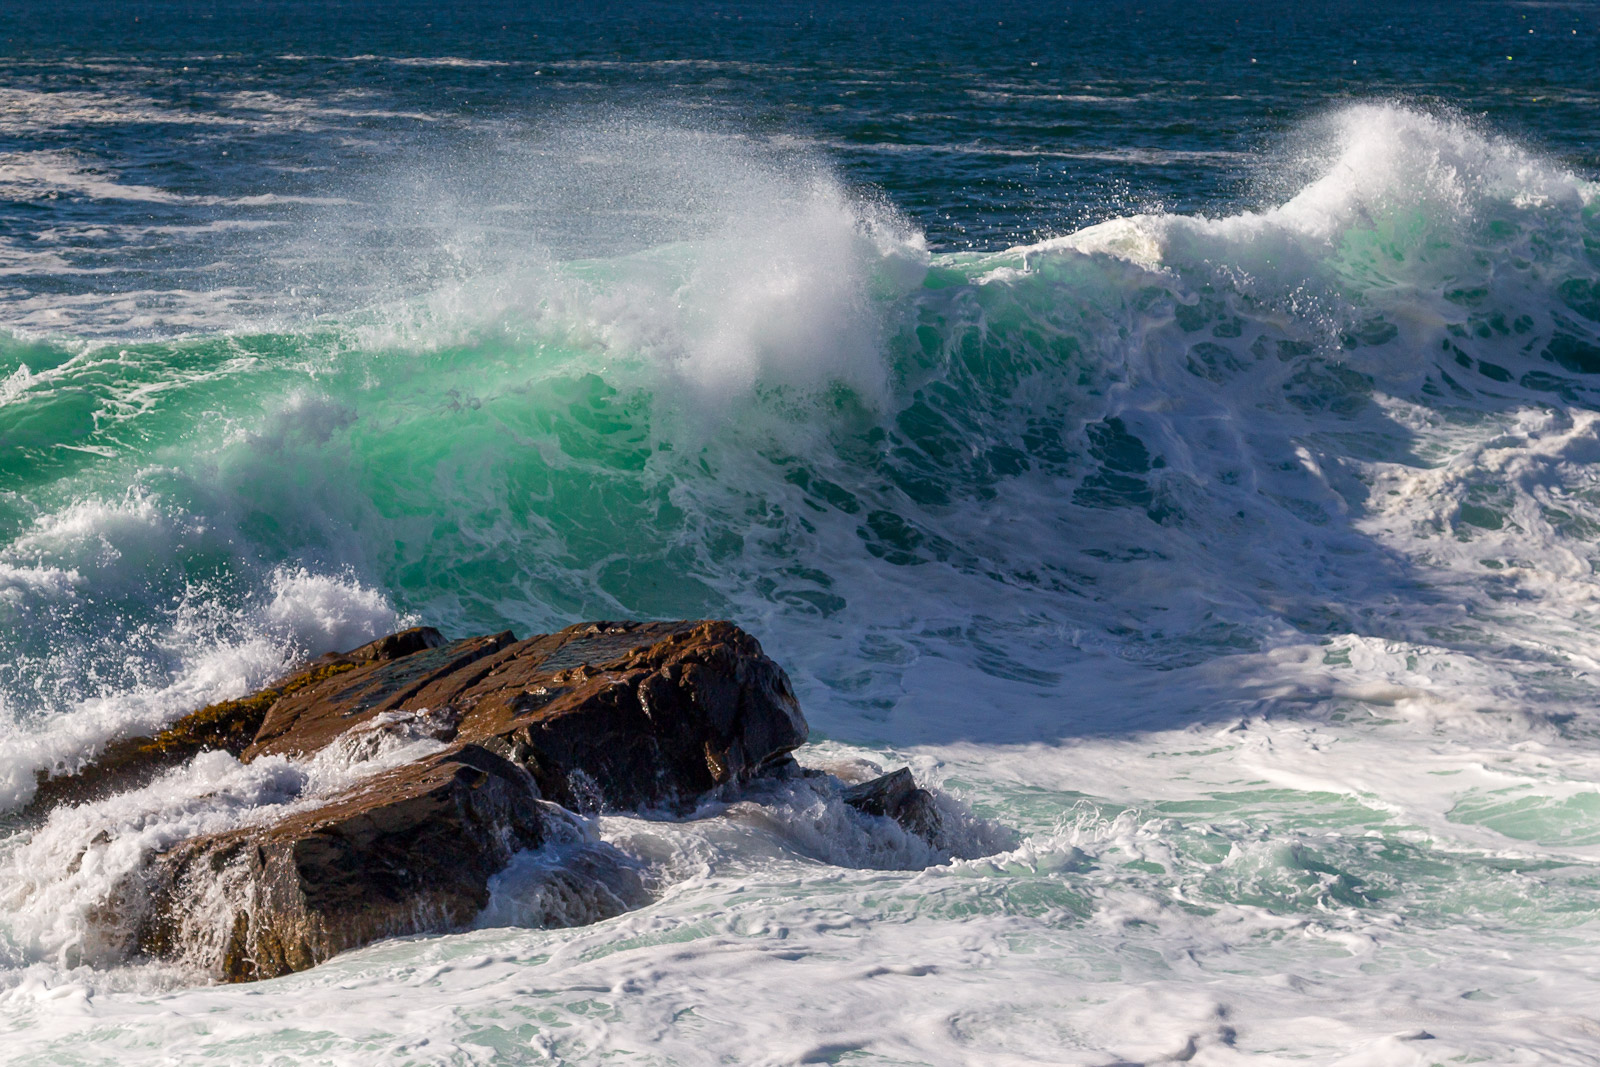 A Limited Edition, Fine Art photograph of large, colorful green and aqua storm waves breaking over rocks at Acadia National Park...